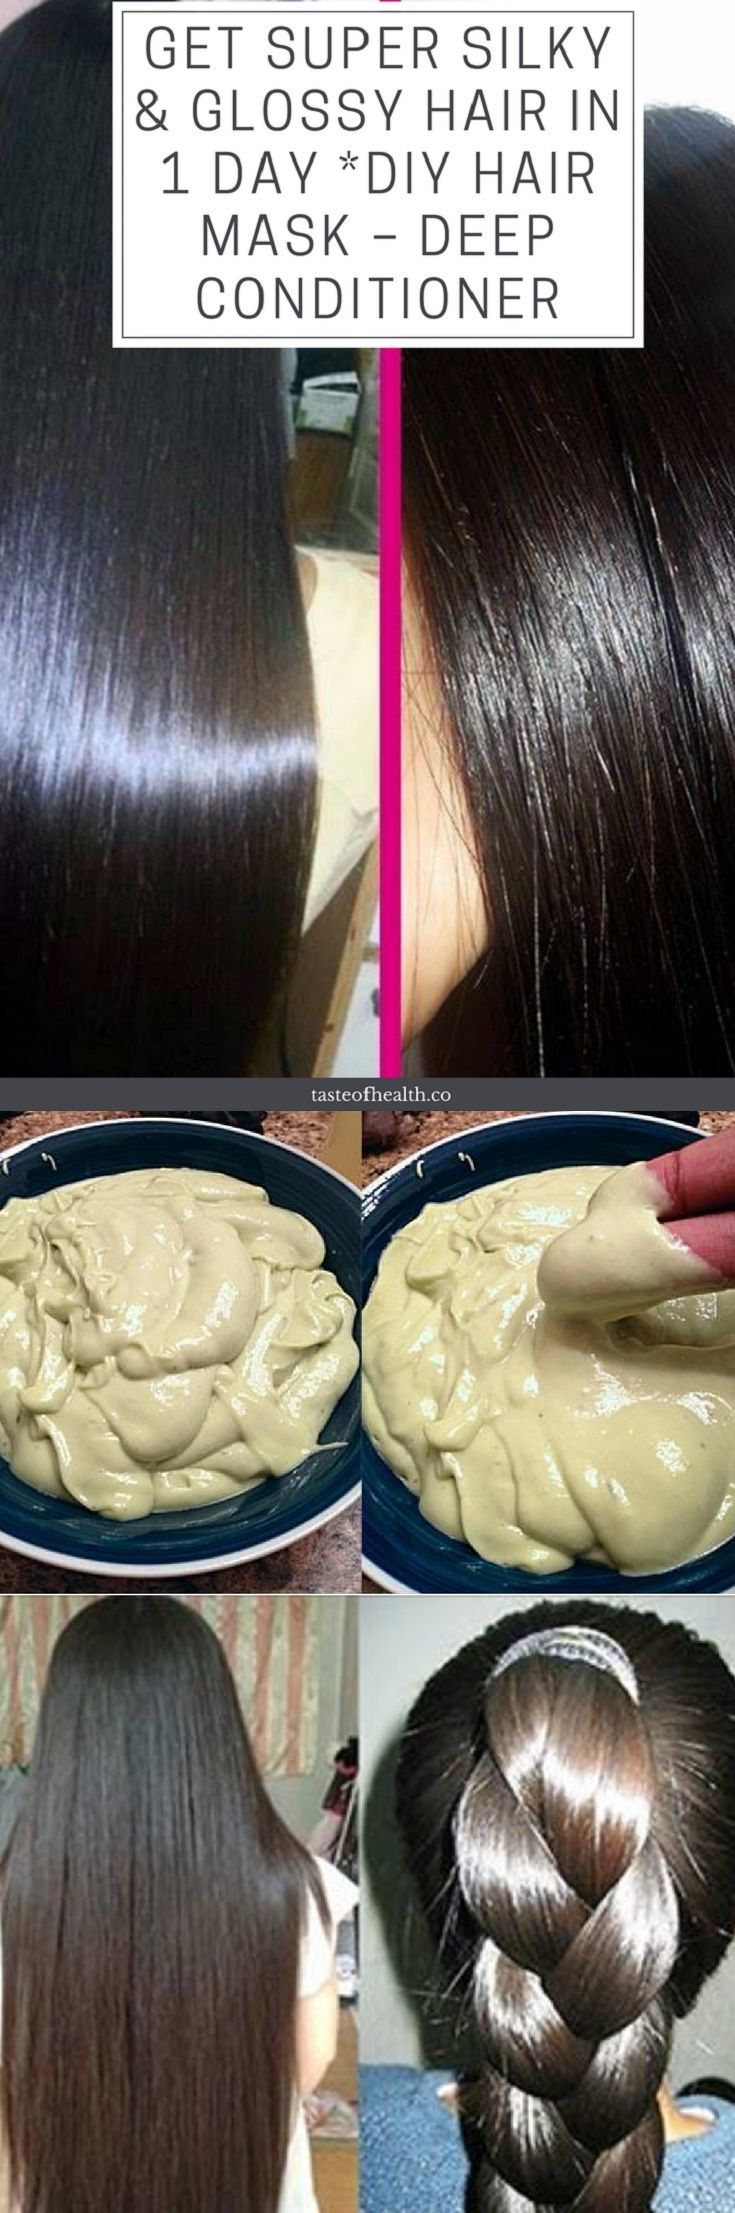 How To Make Your Hair Silky, Long, And Soft 1. Aloe Vera You Will Need Aloe Vera Leaf 2 tbsp Water Spray Bottle Prep Time 5 minutes Treatment Time 5 minutes Method -Slice an aloe vera leaf and extract two tablespoons of gel using a spoon. Ensure that you're only extracting the clear gel and …